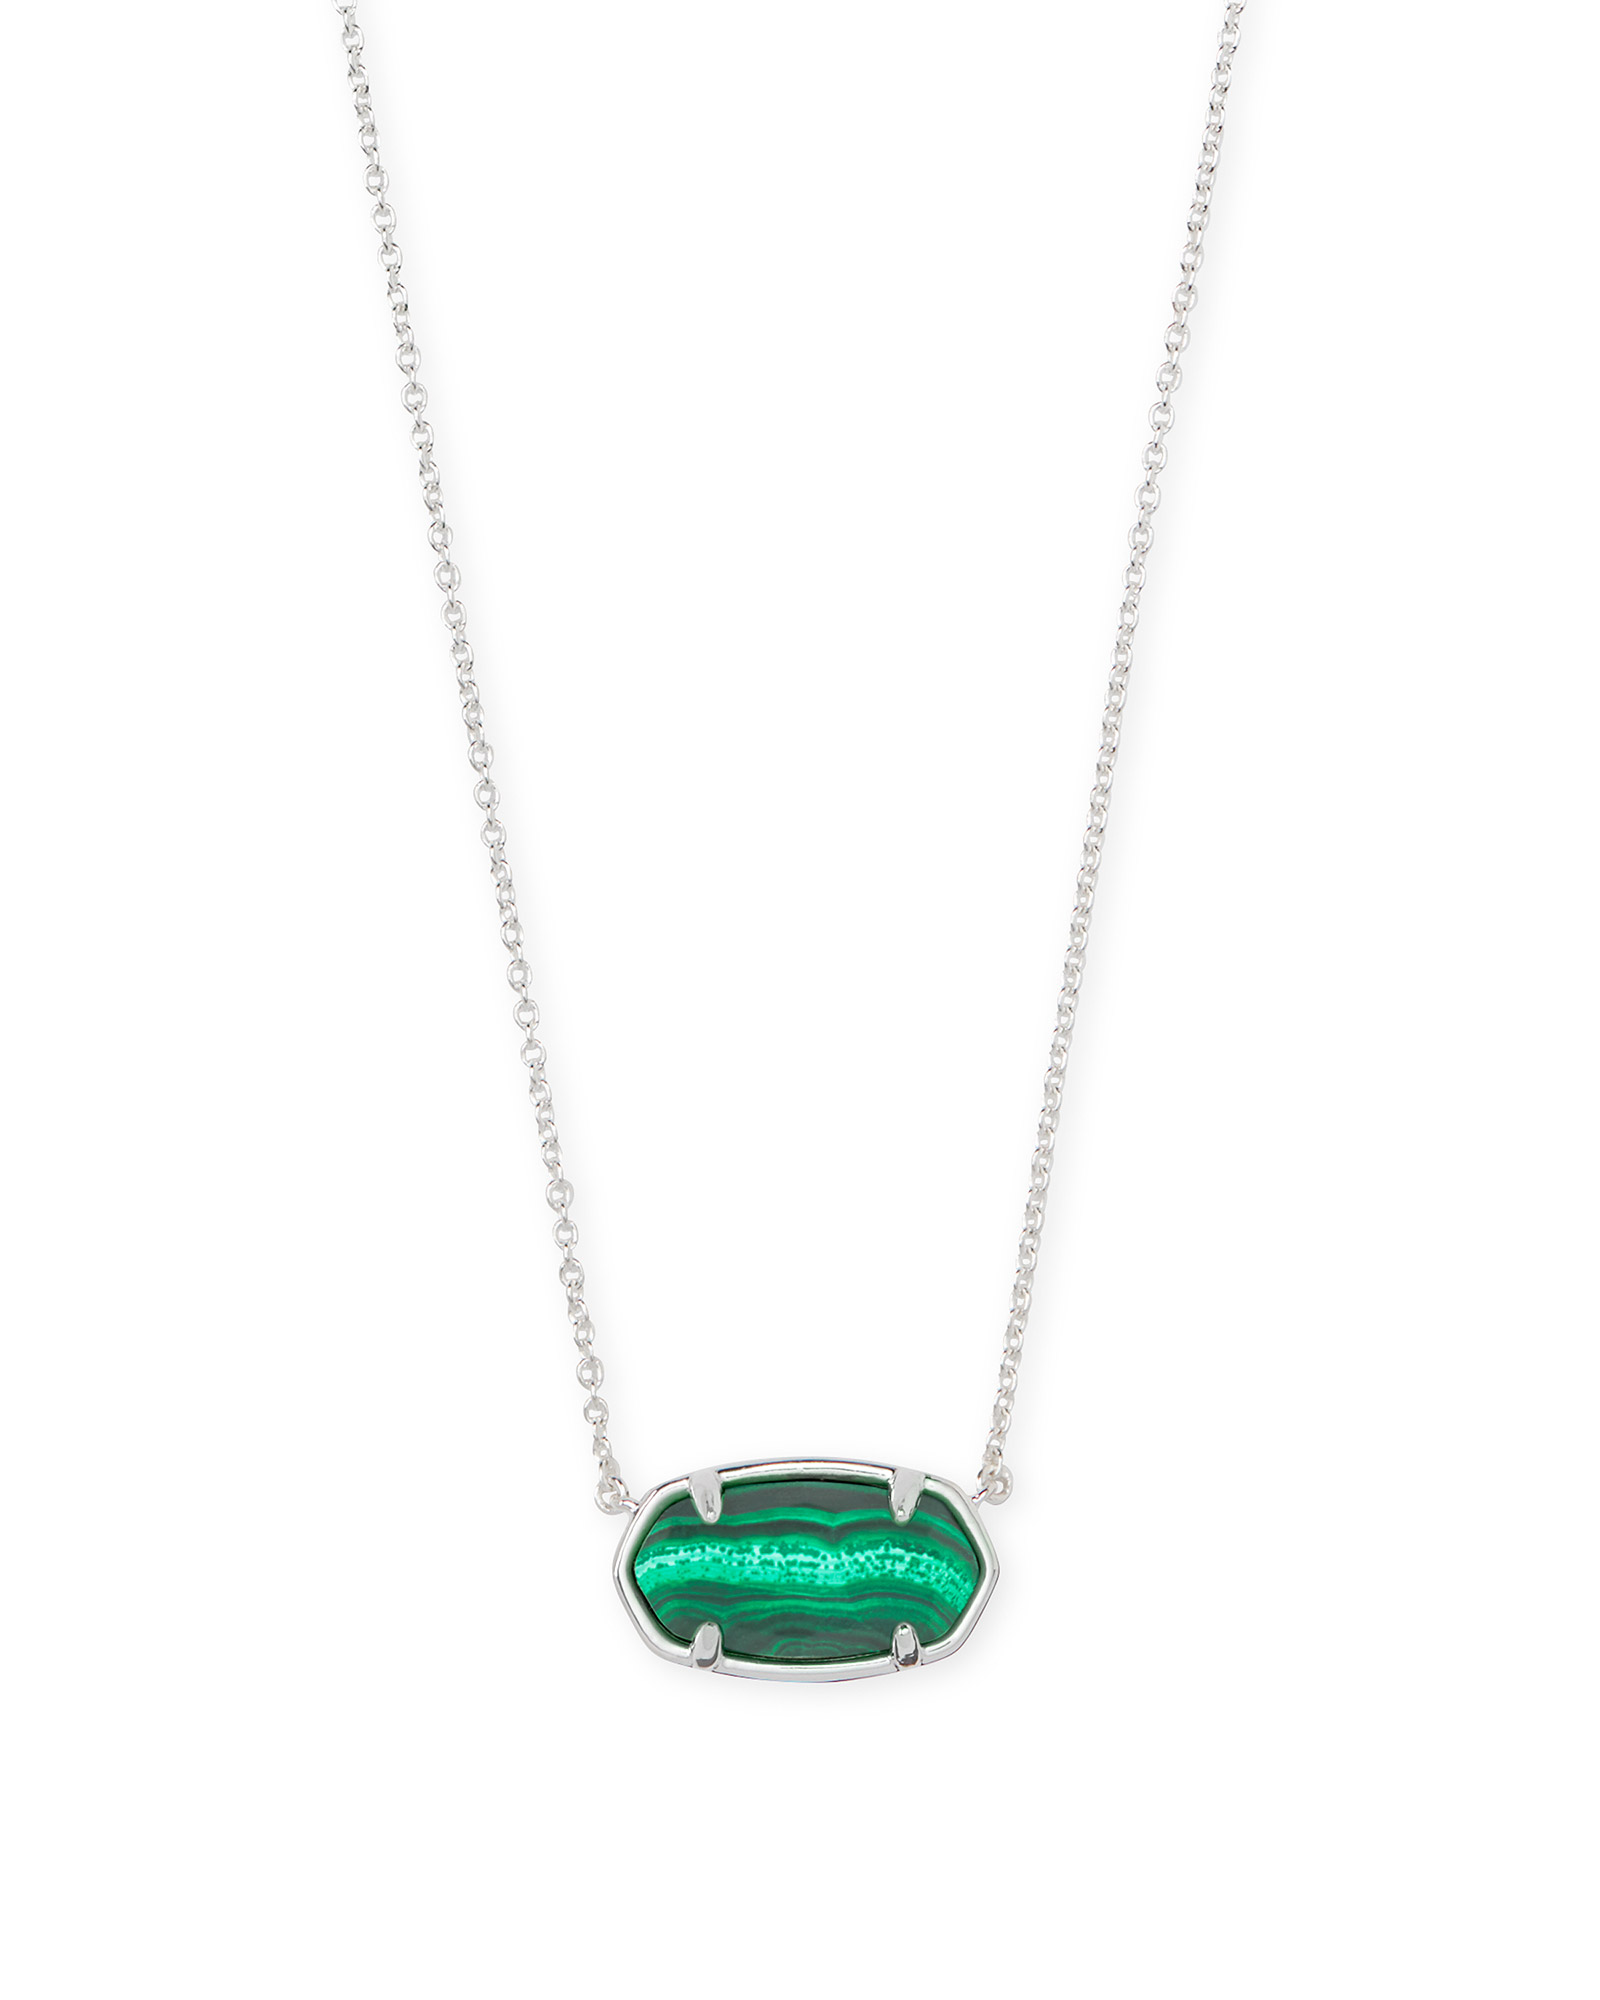 Elisa Sterling Silver Pendant Necklace in Green Malachite